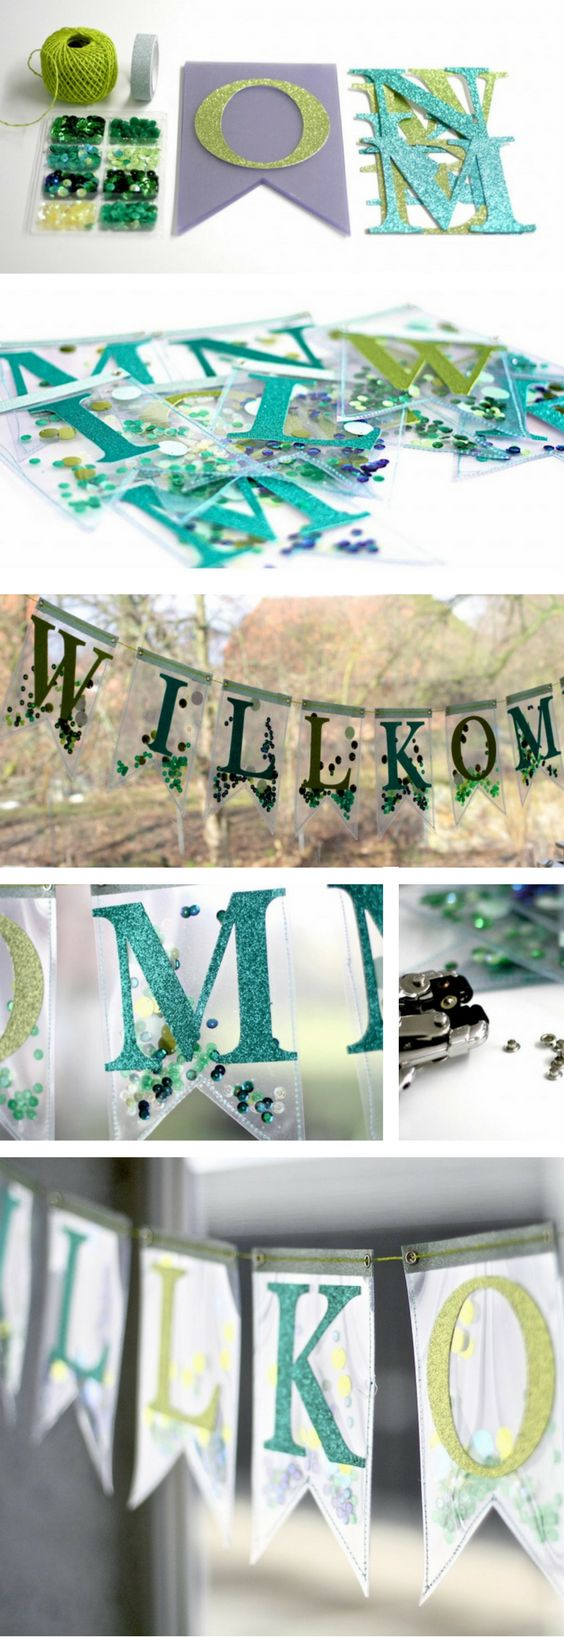 How to use papercrafts to create this welcome bunting with some Sizzix Dies